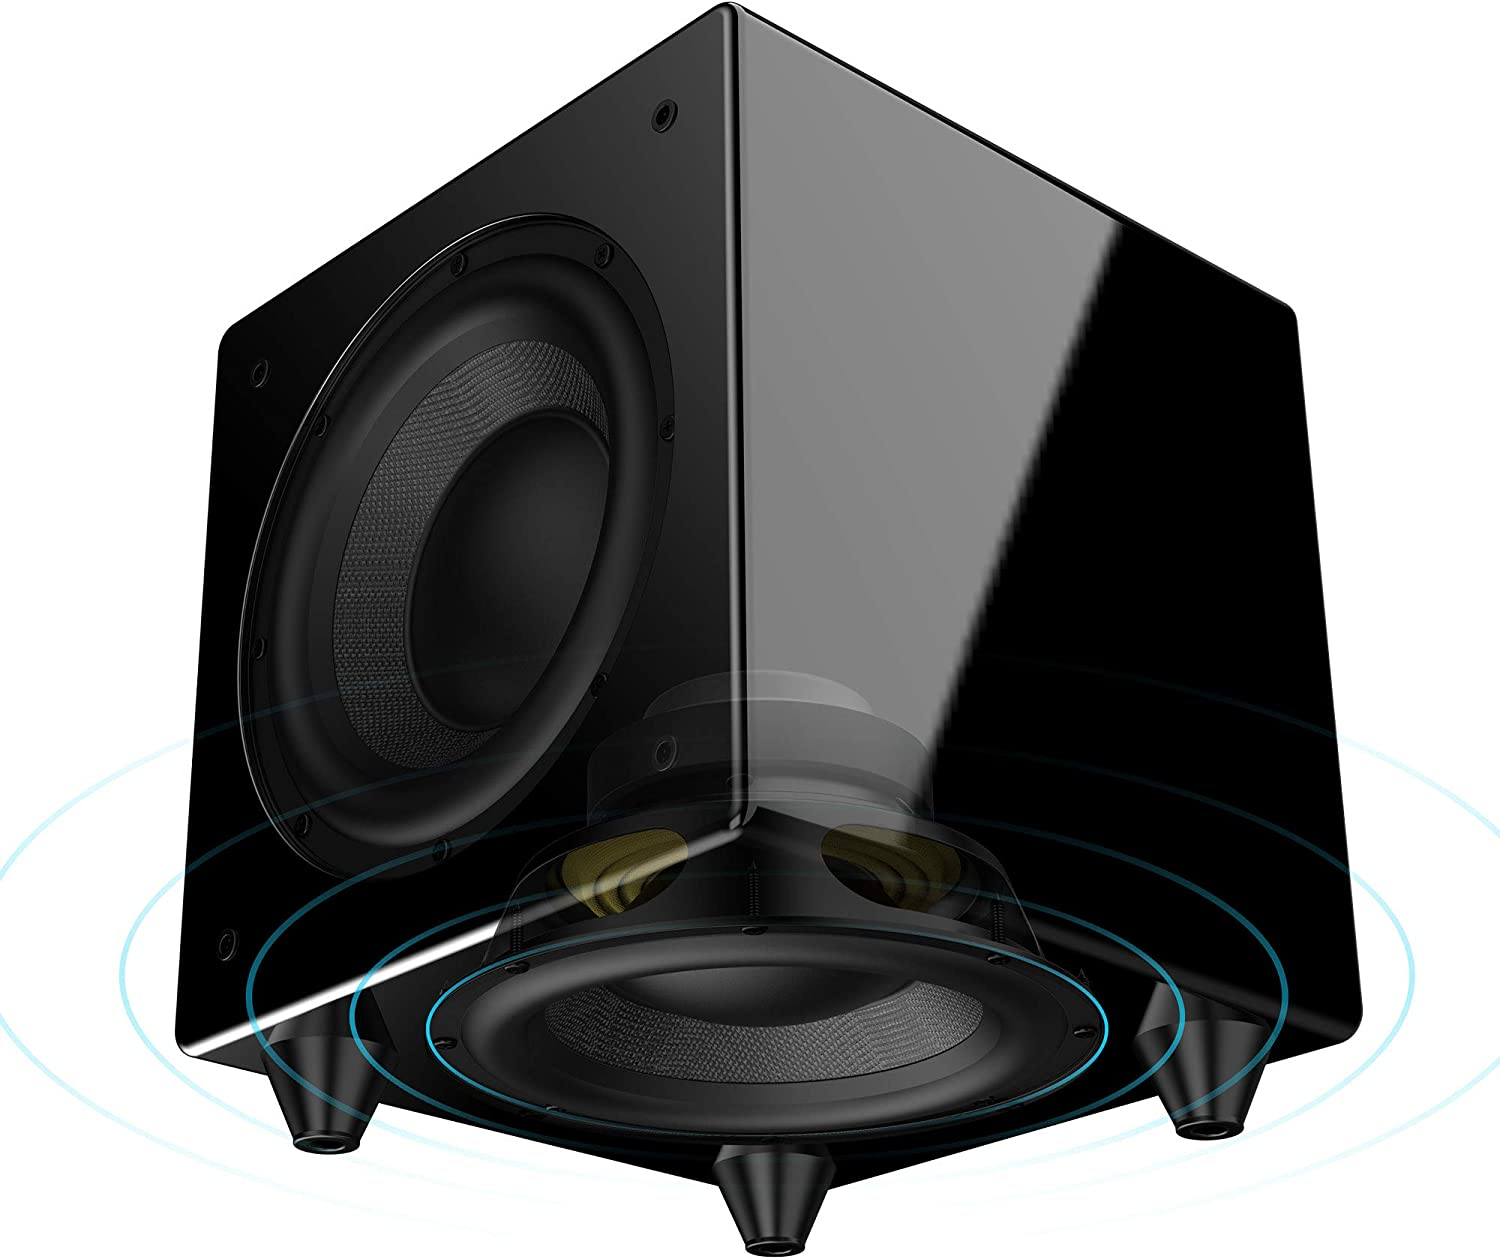 "OSD Audio Nero Dual X8 Dual 8"" Dynamic Powered Subwoofer with Active andPassive Woofers and 300W of Power, Gold-plated Inputs & Piano Black Finish"